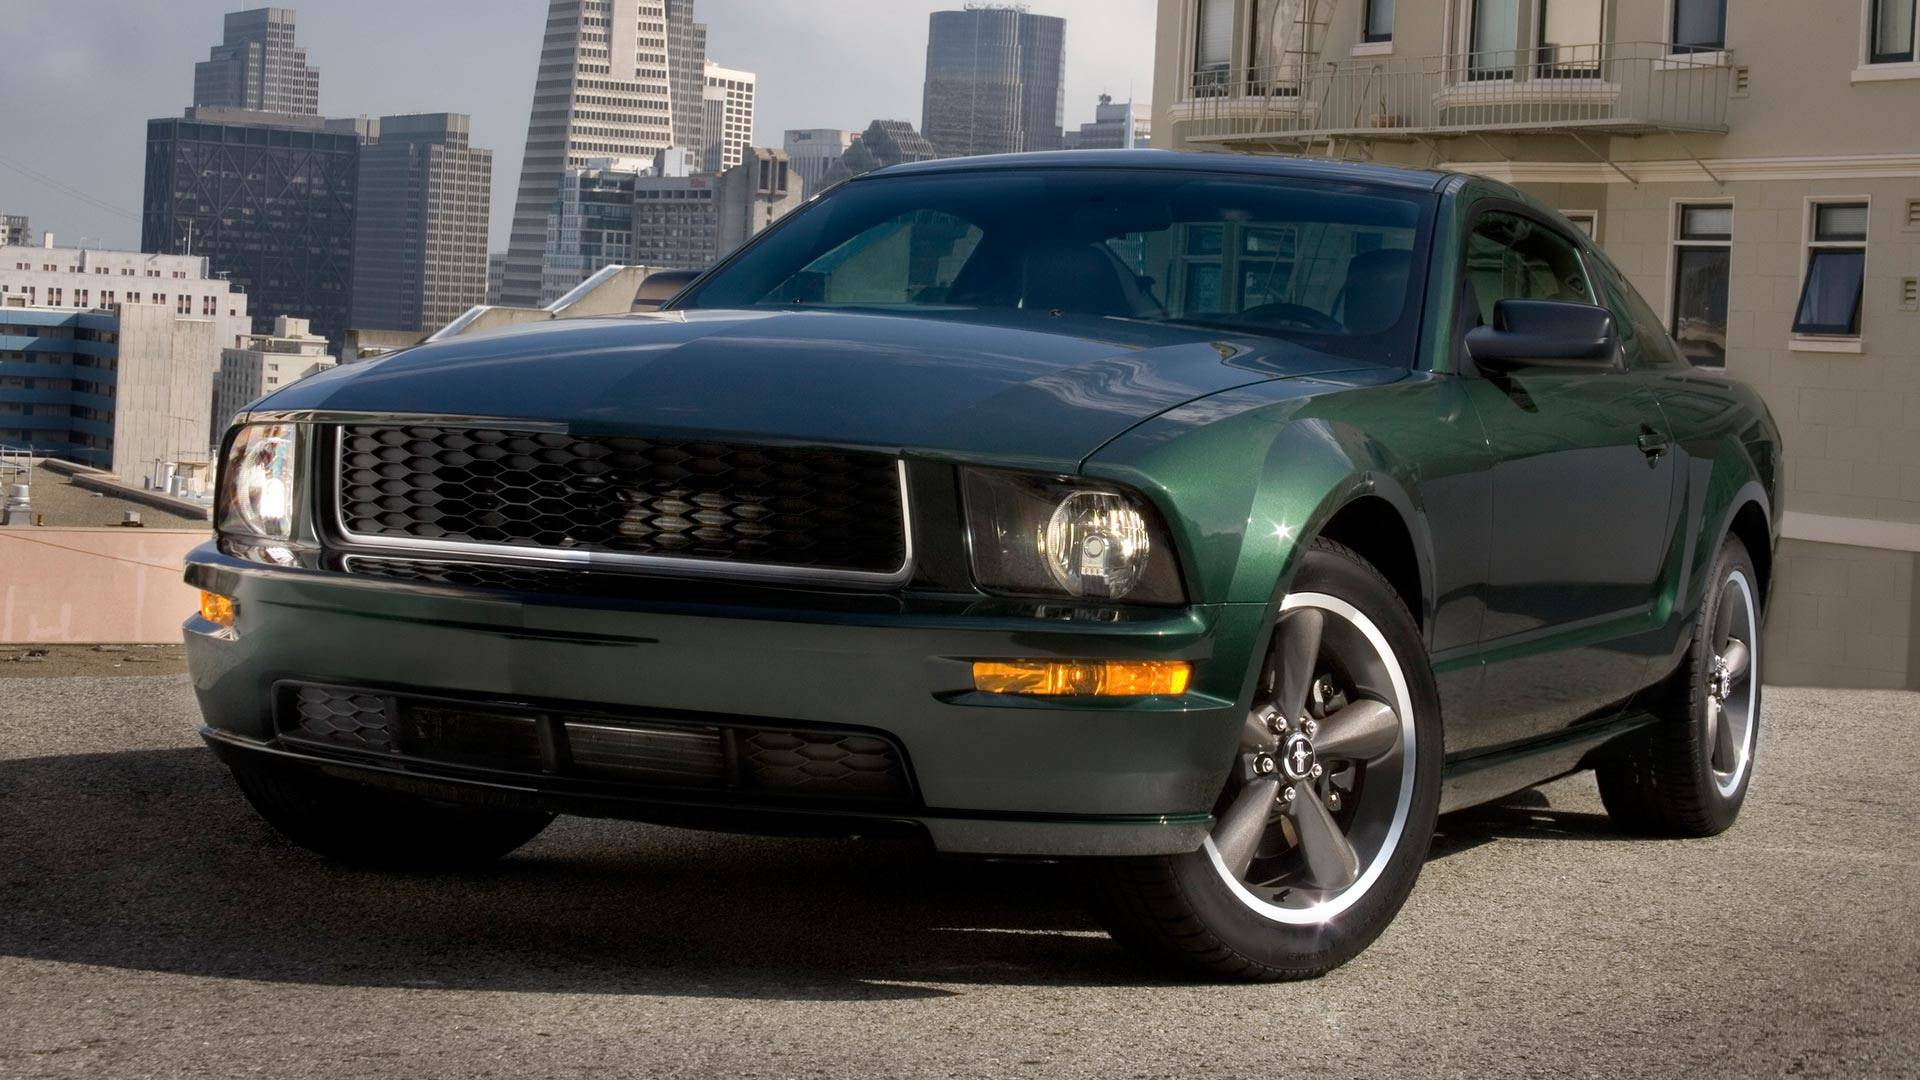 2018 ford mustang bullitt allegedly debuting at detroit auto show